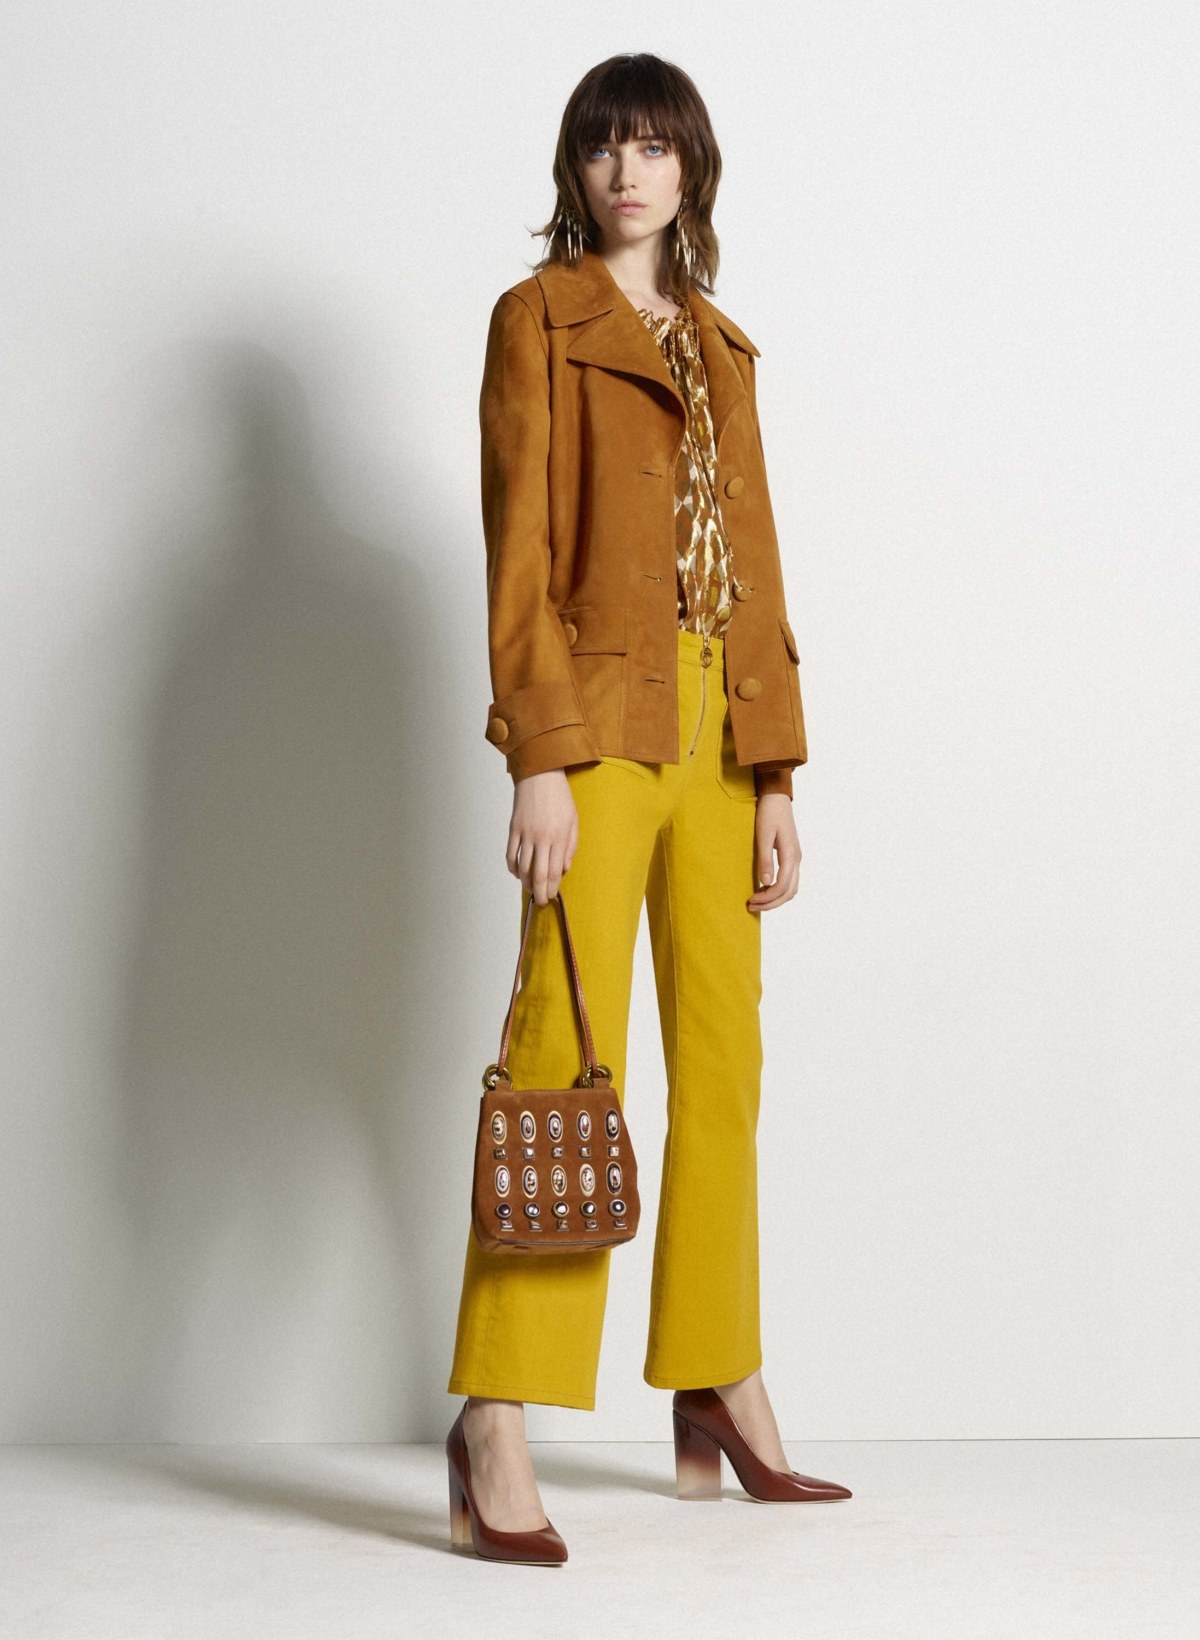 tory-burch-pre-fall-2017-fashion-show-the-impression-22